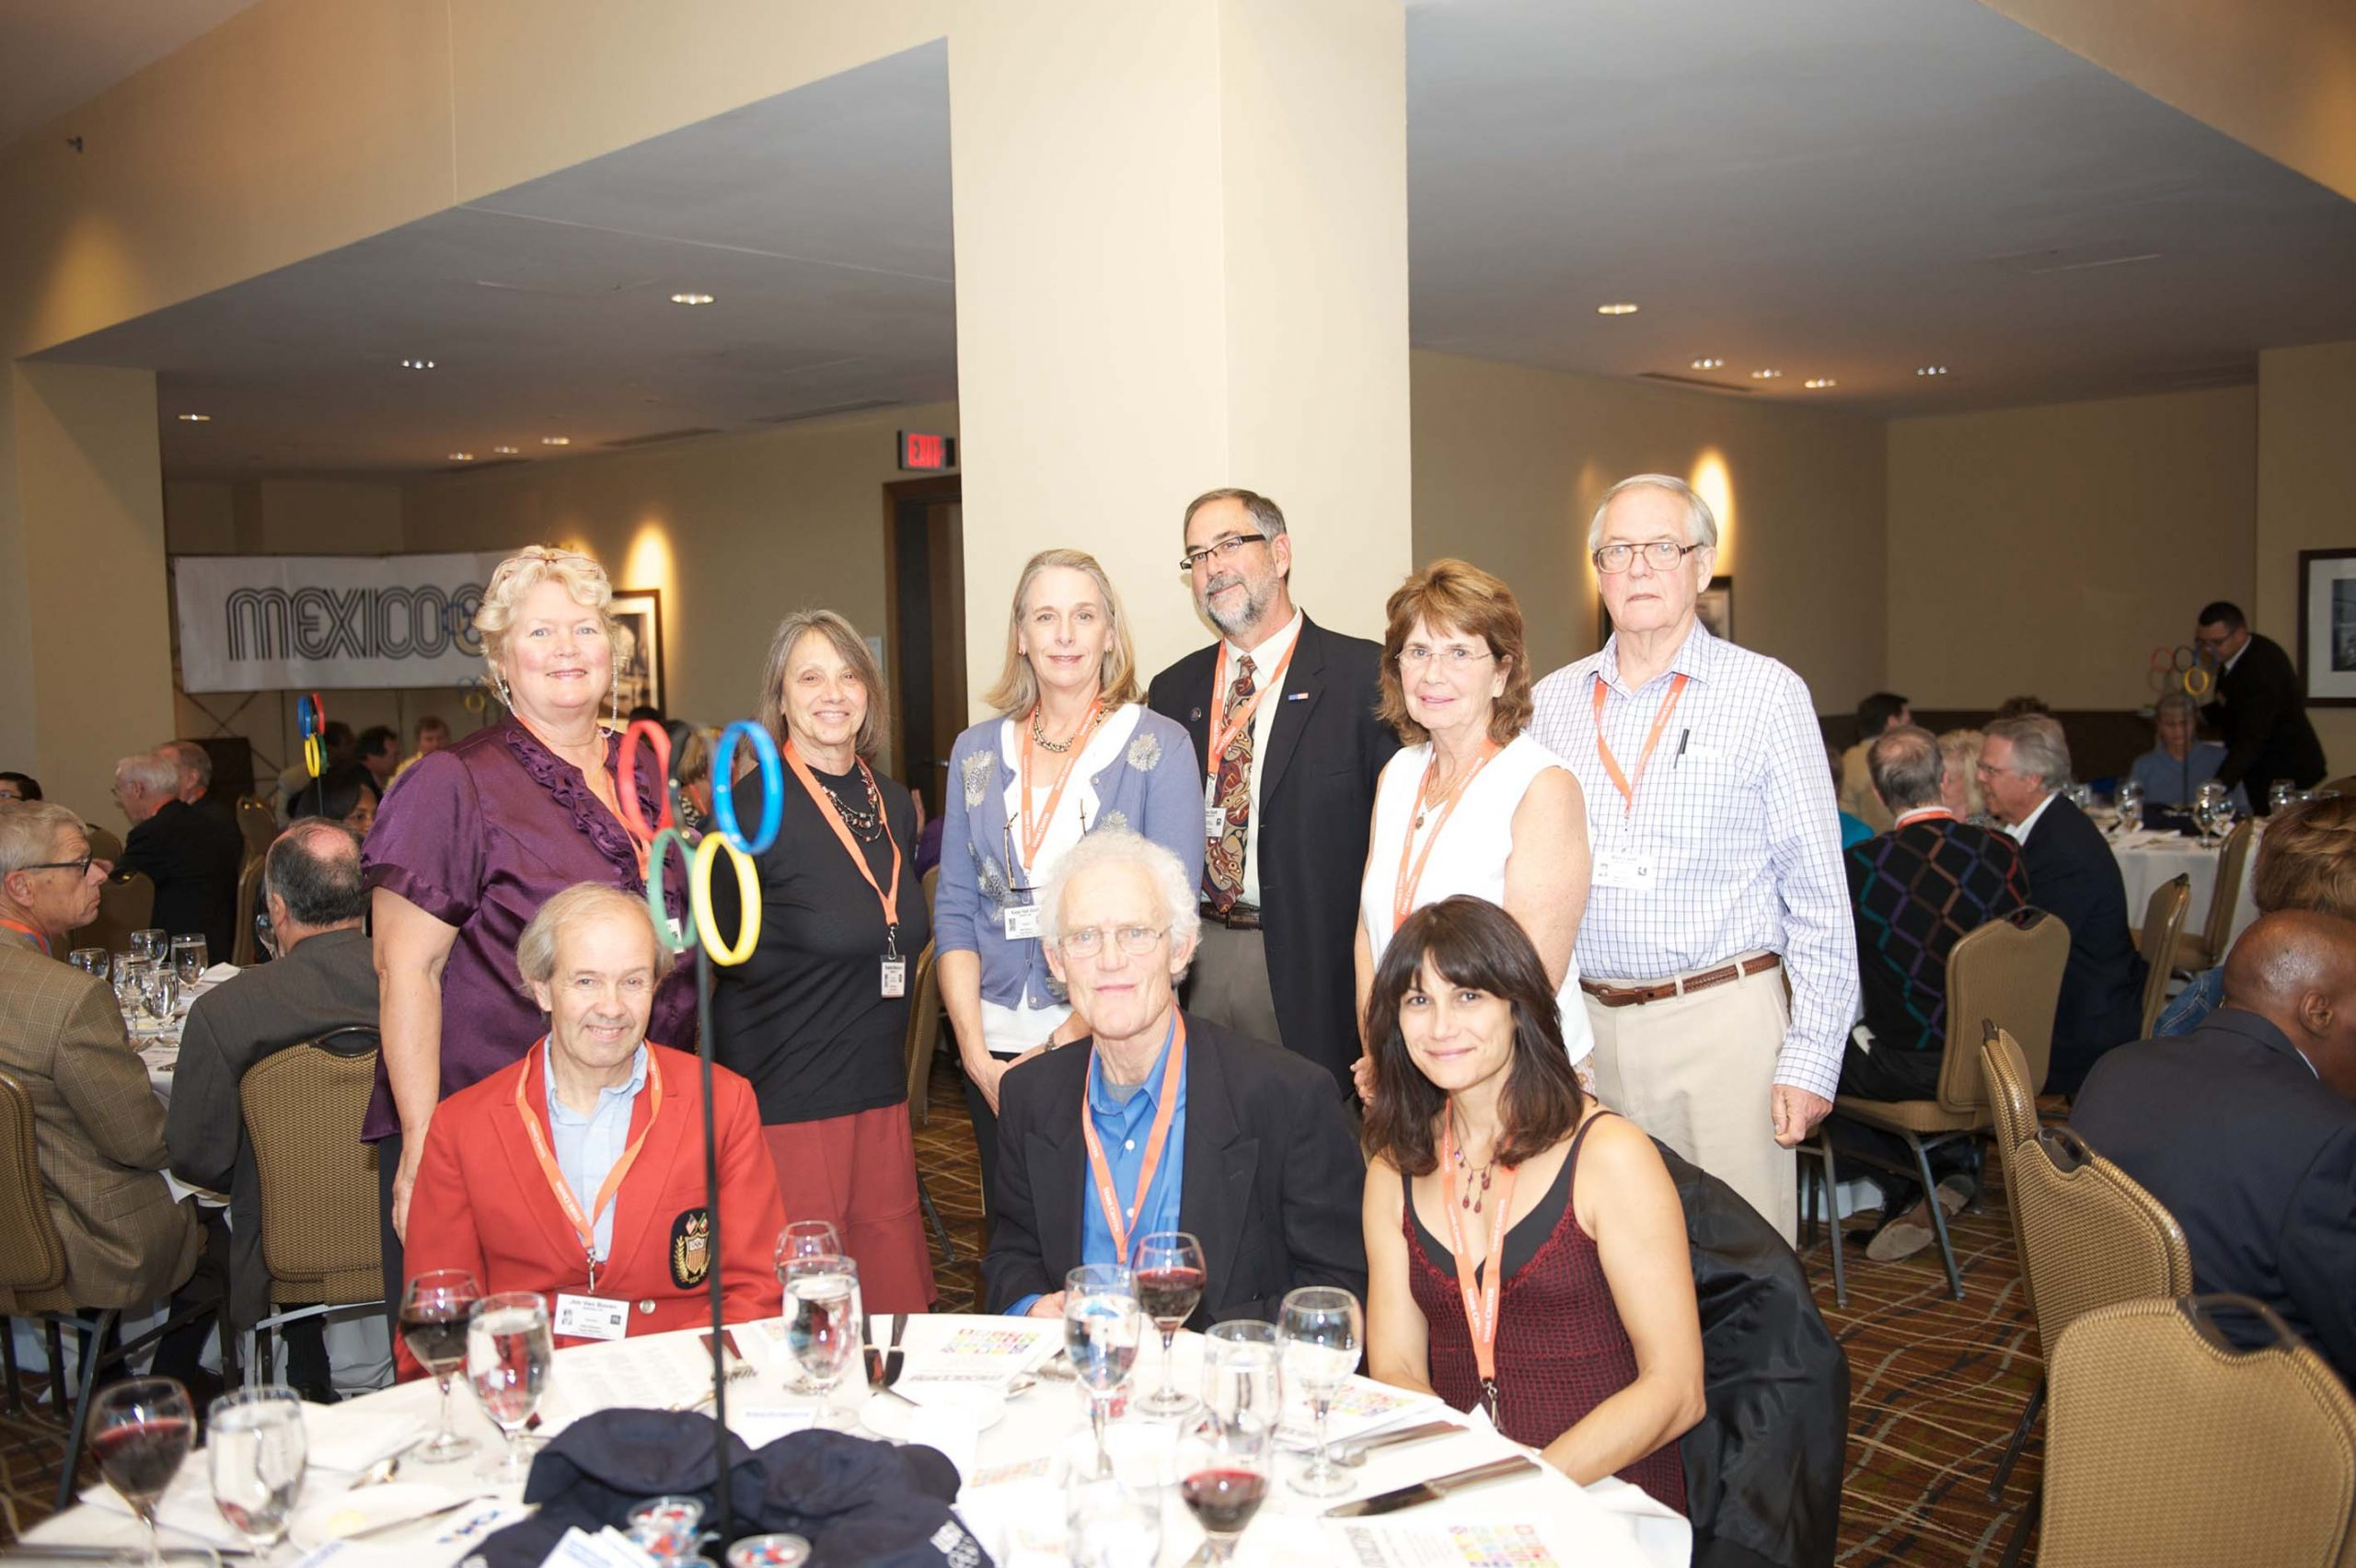 Nine people at a table at the 1968 U.S. Olympic Team 2012 Reunion.